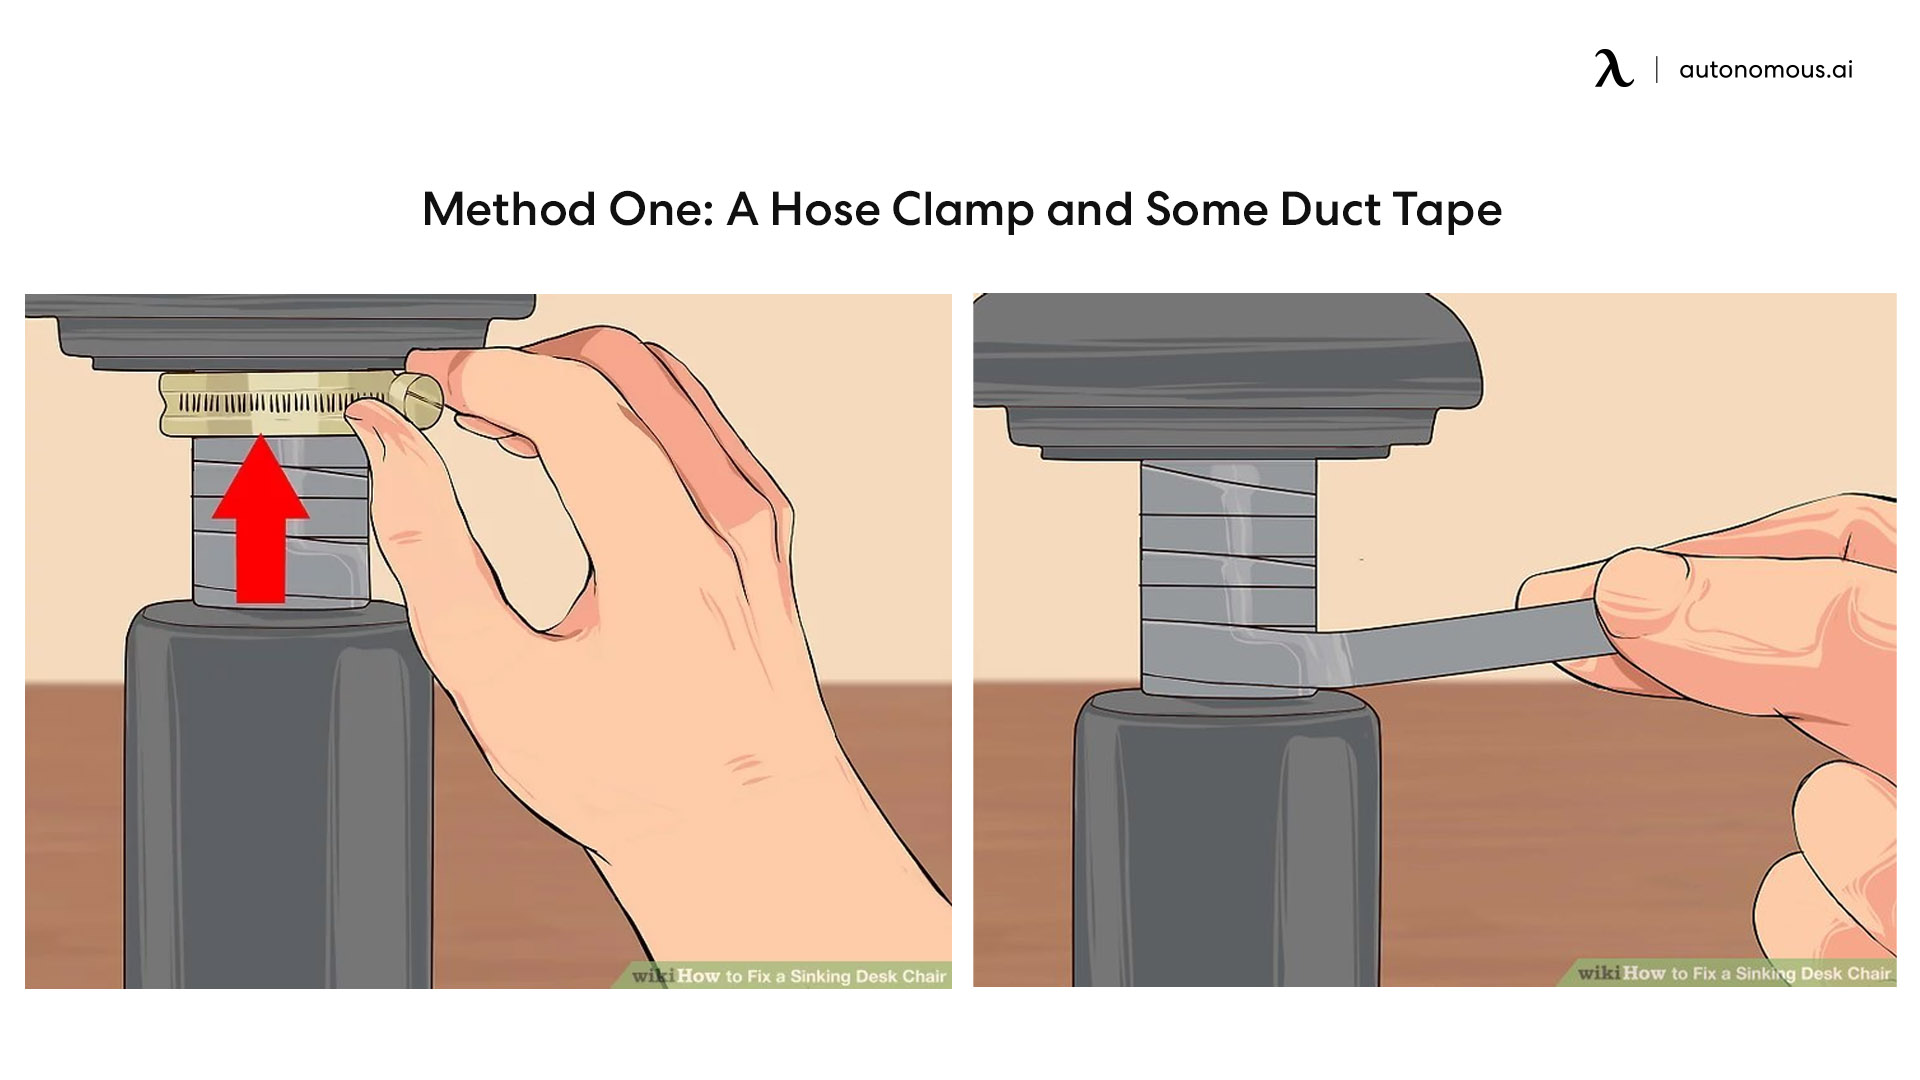 a hose clamp and some duct tape